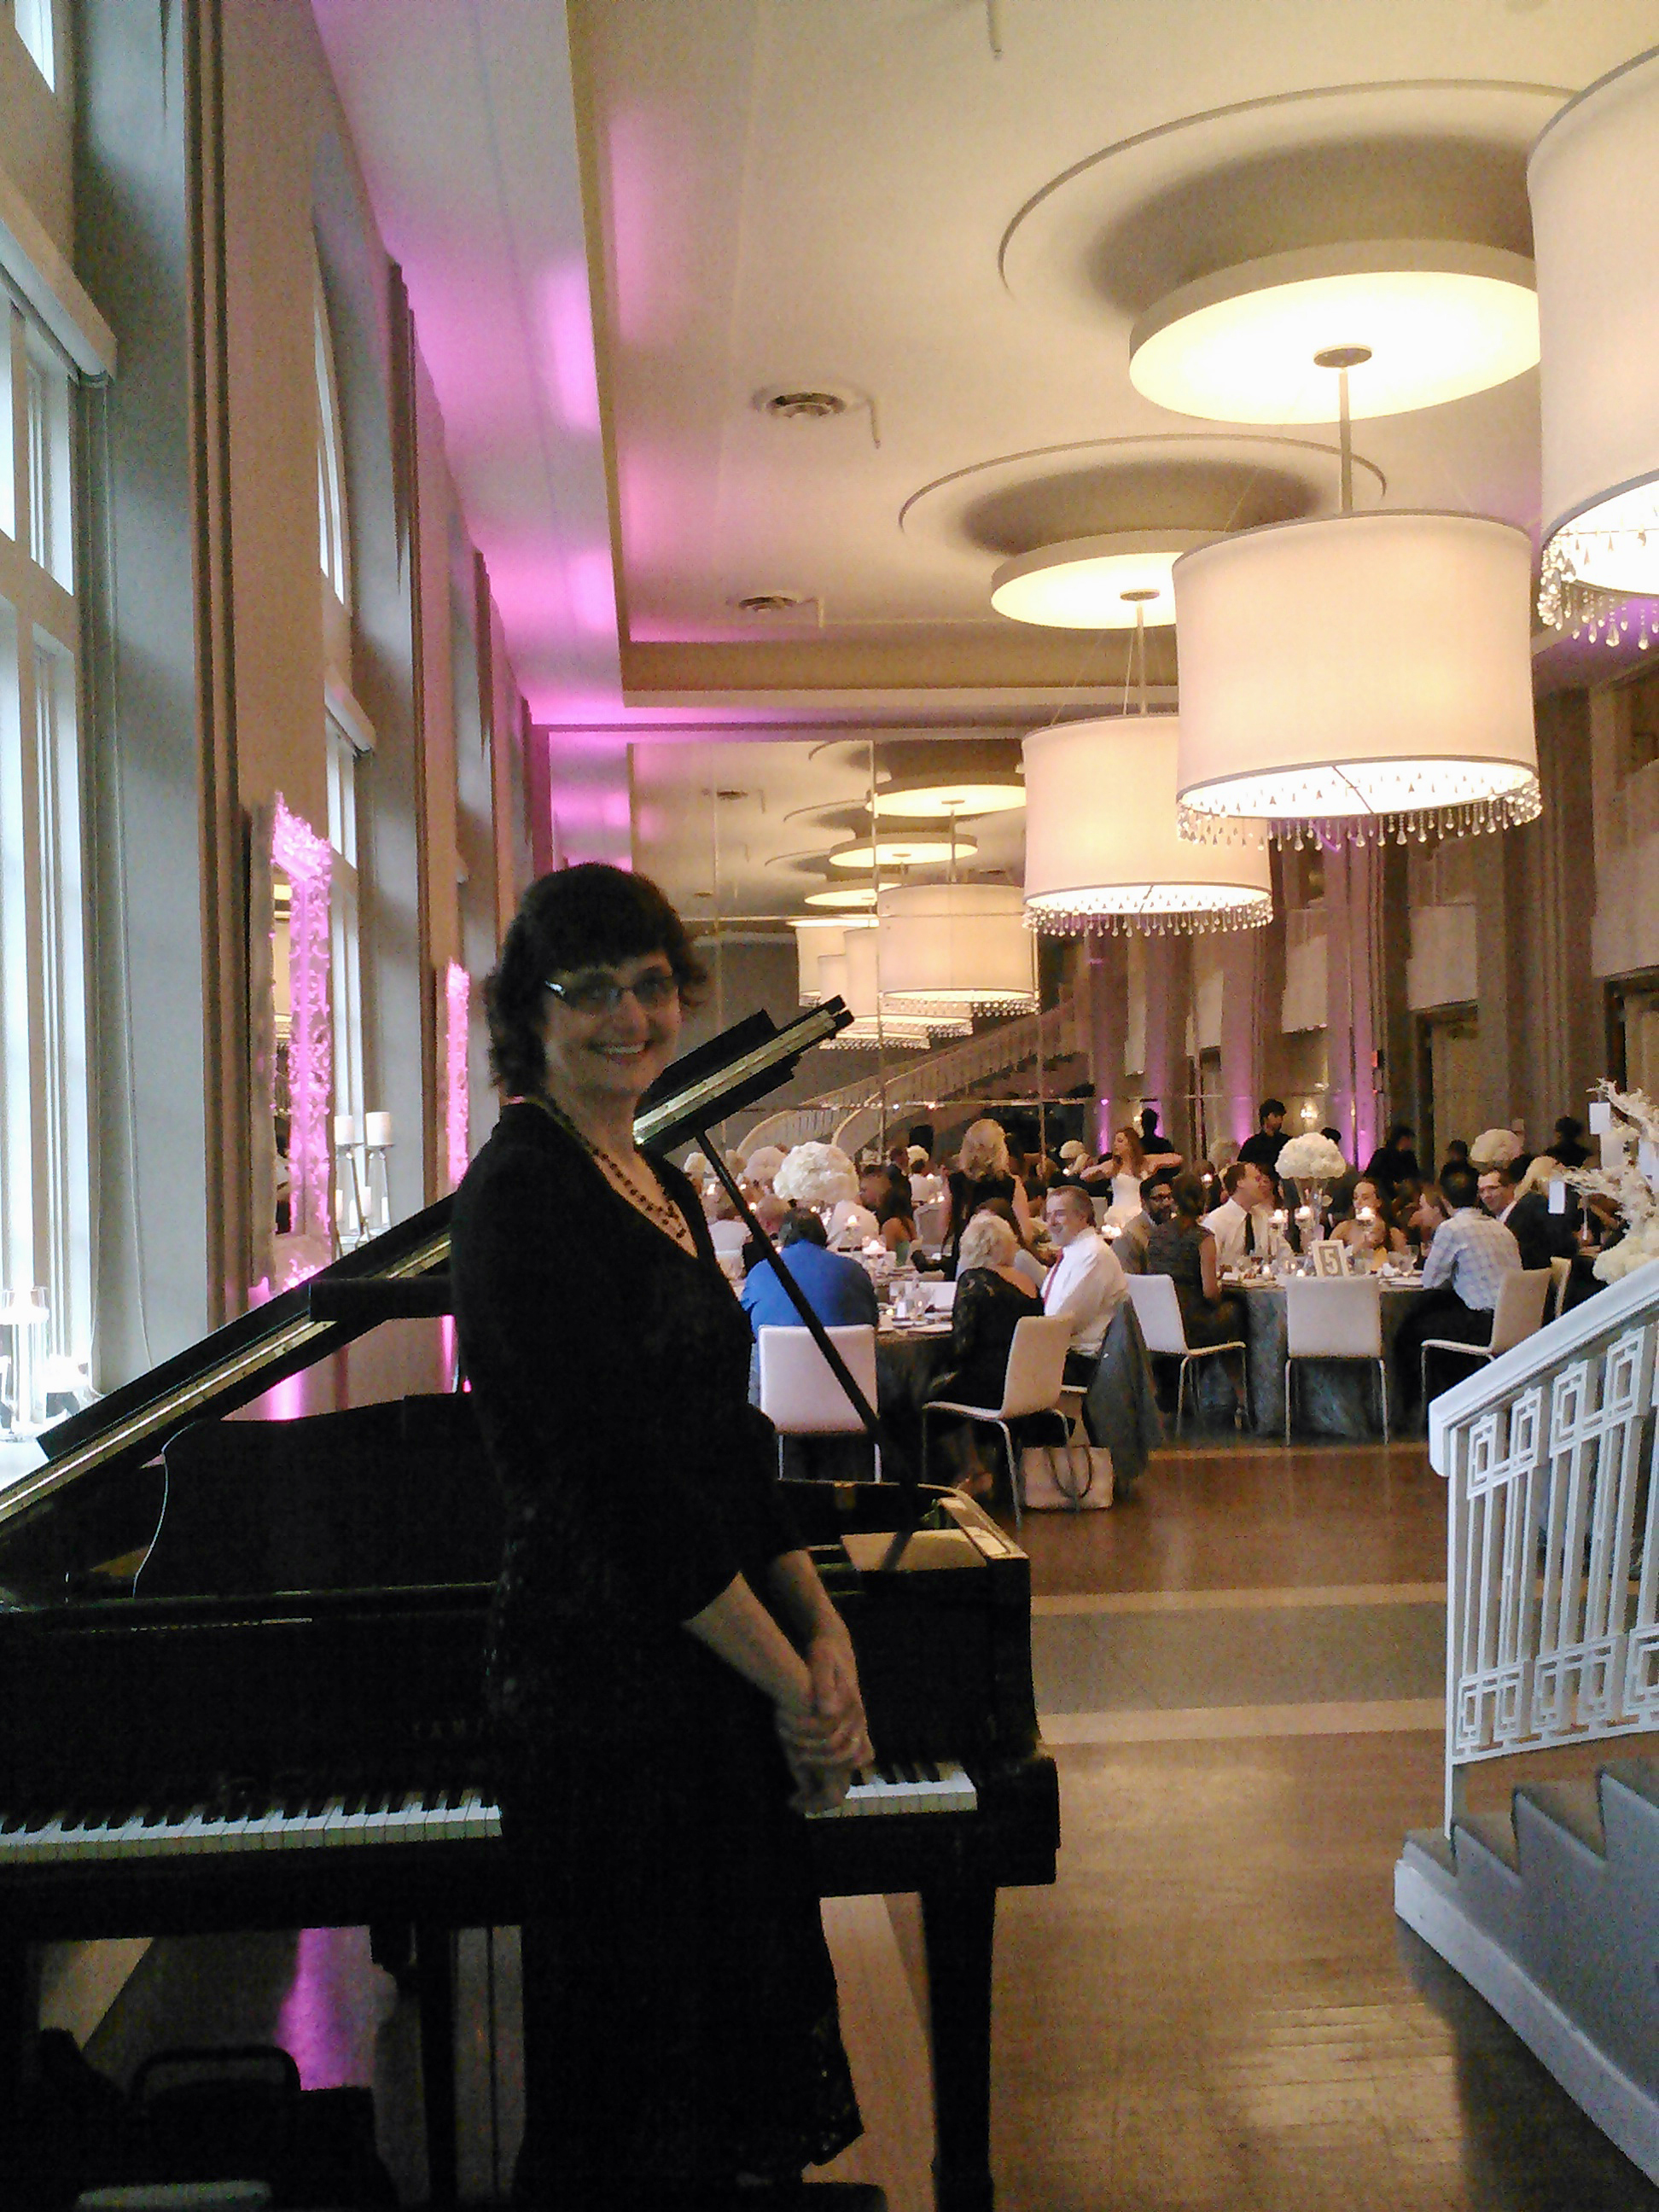 Sharon loved creating a romantic musical atmosphere on the grand piano for the newly married couple and their guests in the Boulevard Room at the Calhoun Beach Club.